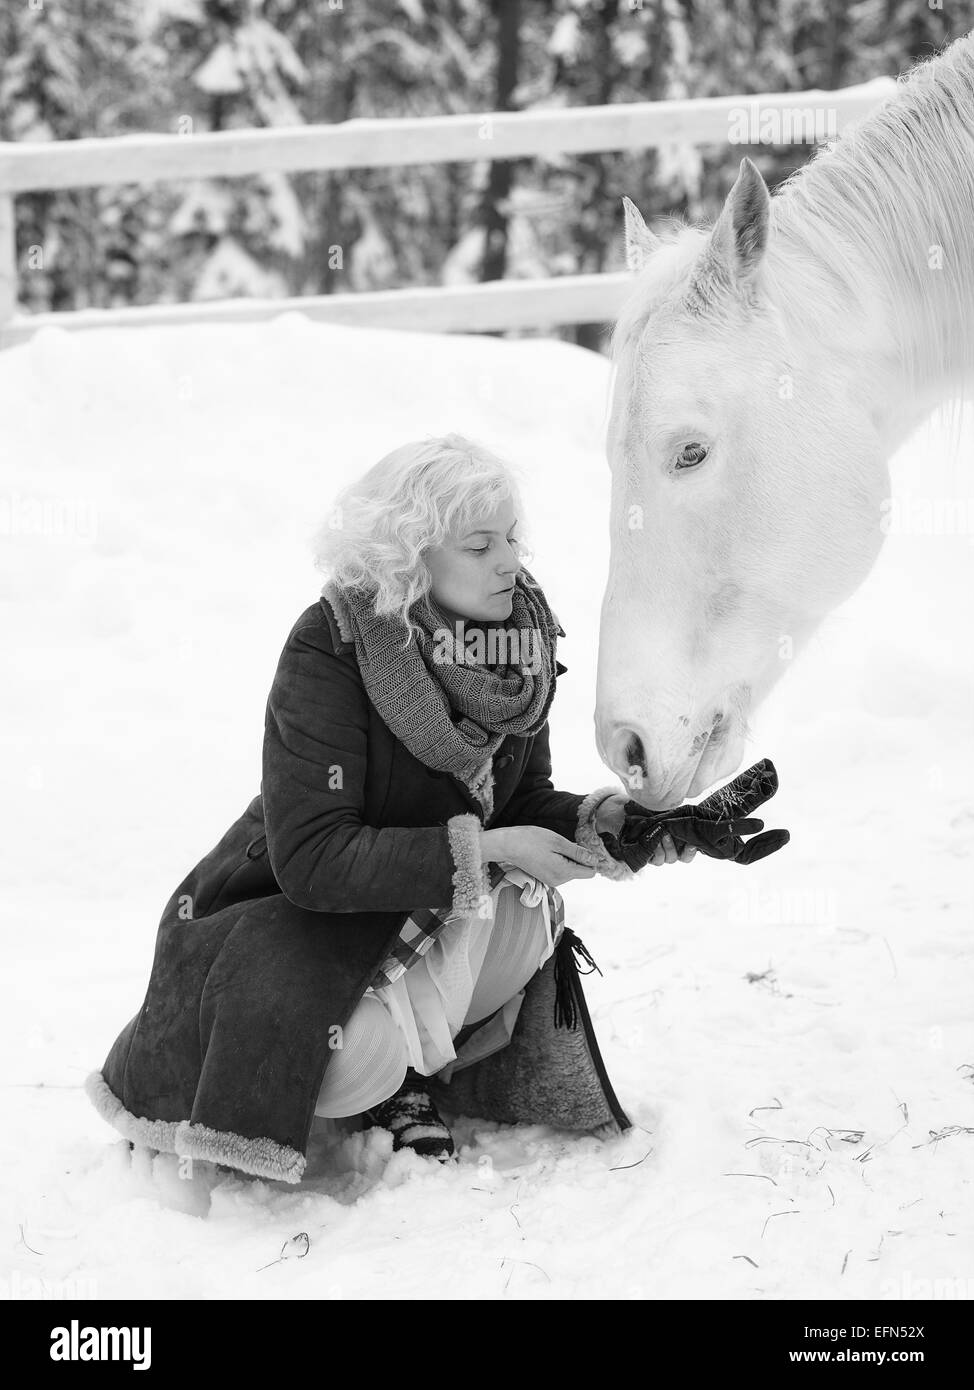 Attractive blond woman feeds a white horse, overcast winter day, black and white image - Stock Image